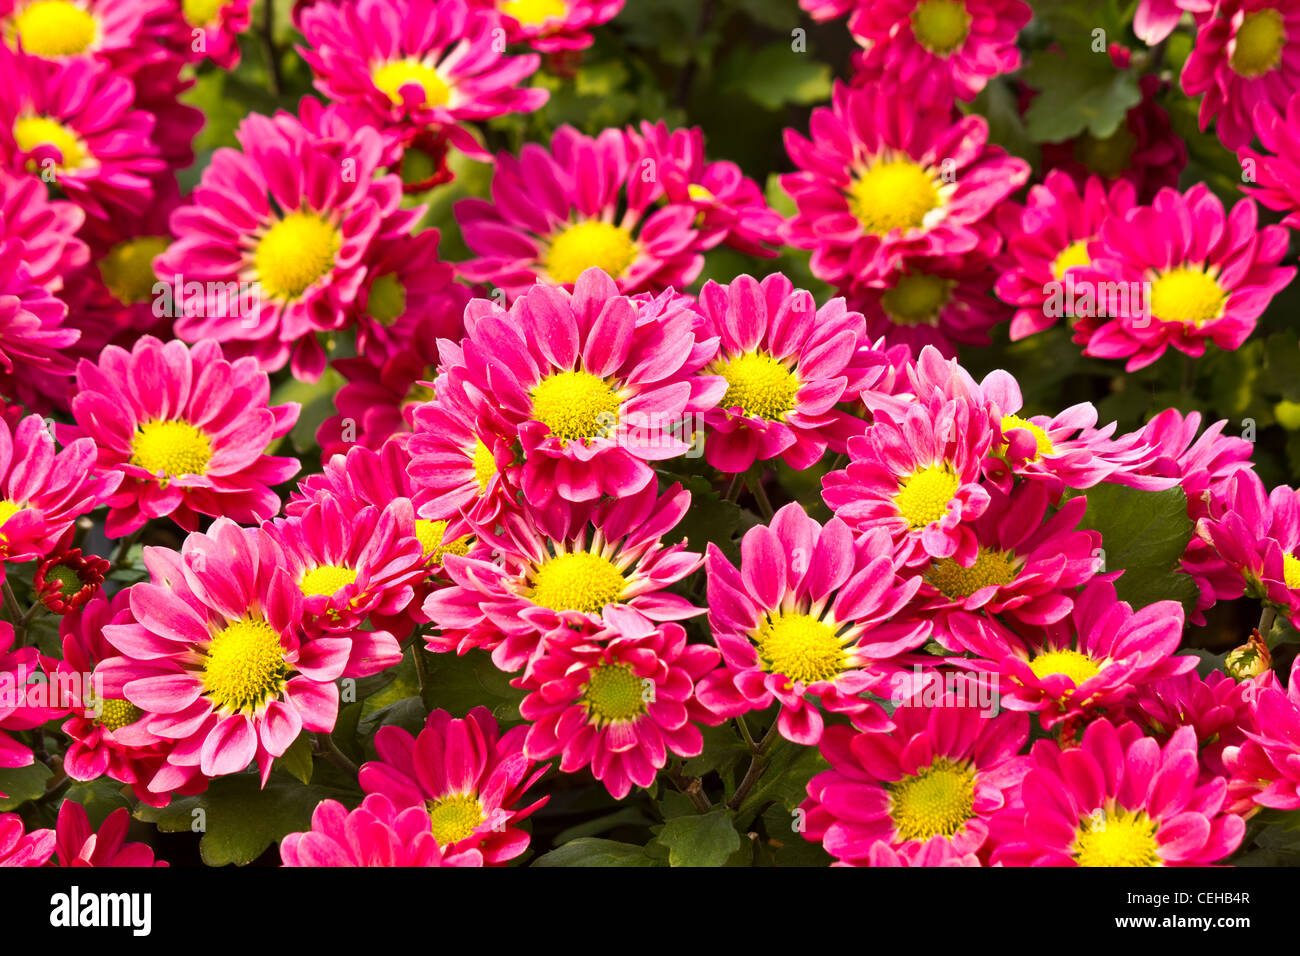 Pink daisy flowers in the garden background stock photo 43407863 pink daisy flowers in the garden background izmirmasajfo